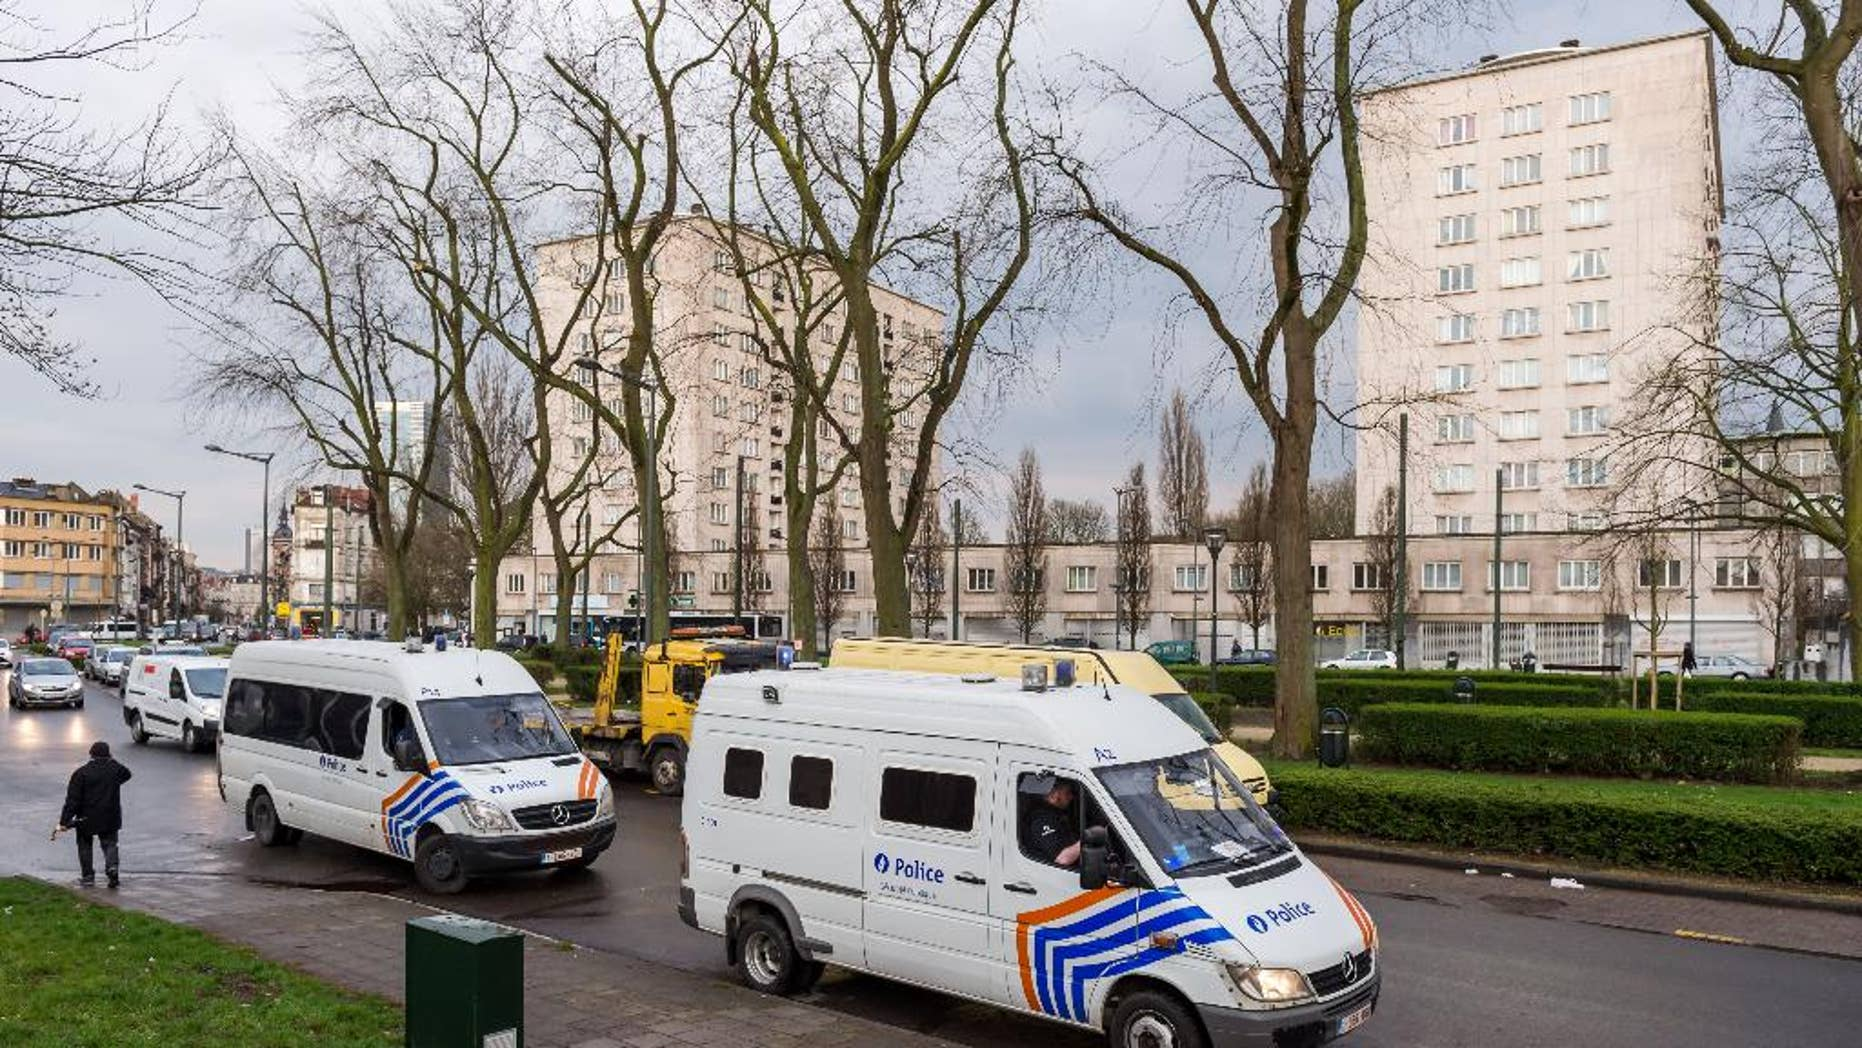 """Police secure an area where two terror suspects were arrested in Brussels on Friday April 8, 2016. A fugitive suspect in the Nov. 13 Paris attacks was arrested in Belgium on Friday, French police officials said, after a raid Belgian authorities said was linked to the deadly March 22 Brussels bombings. The suspect, Mohamed Abrini, is believed to be the mysterious """"man in the hat"""" who escaped the double bombing at the Zaventem airport, according to one of the French officials.(AP Photo/Geert Vanden Wijngaert)"""